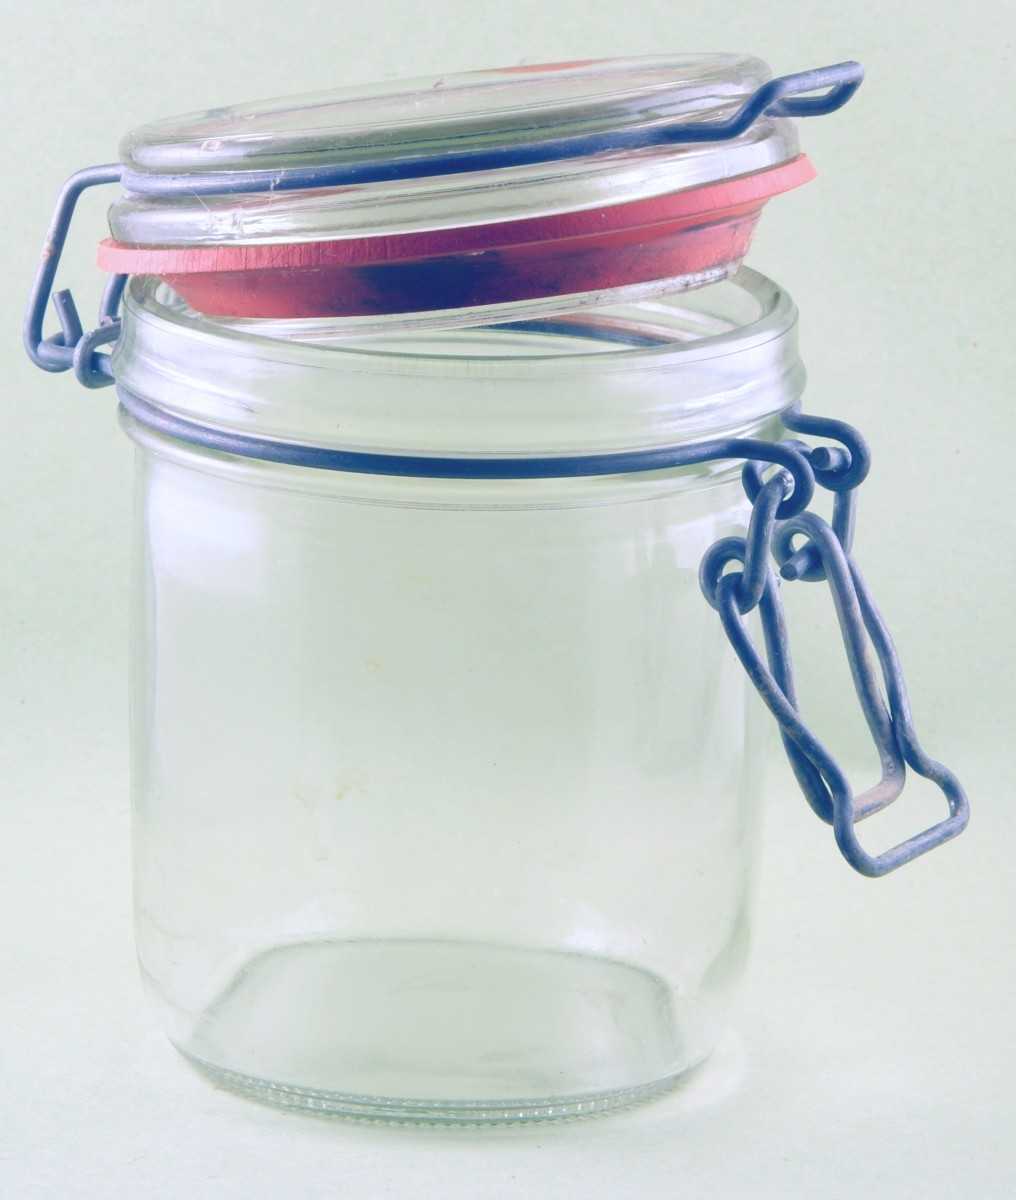 recycle old jam jars, sauce jars or baby food jars.clean and sterilize before using.